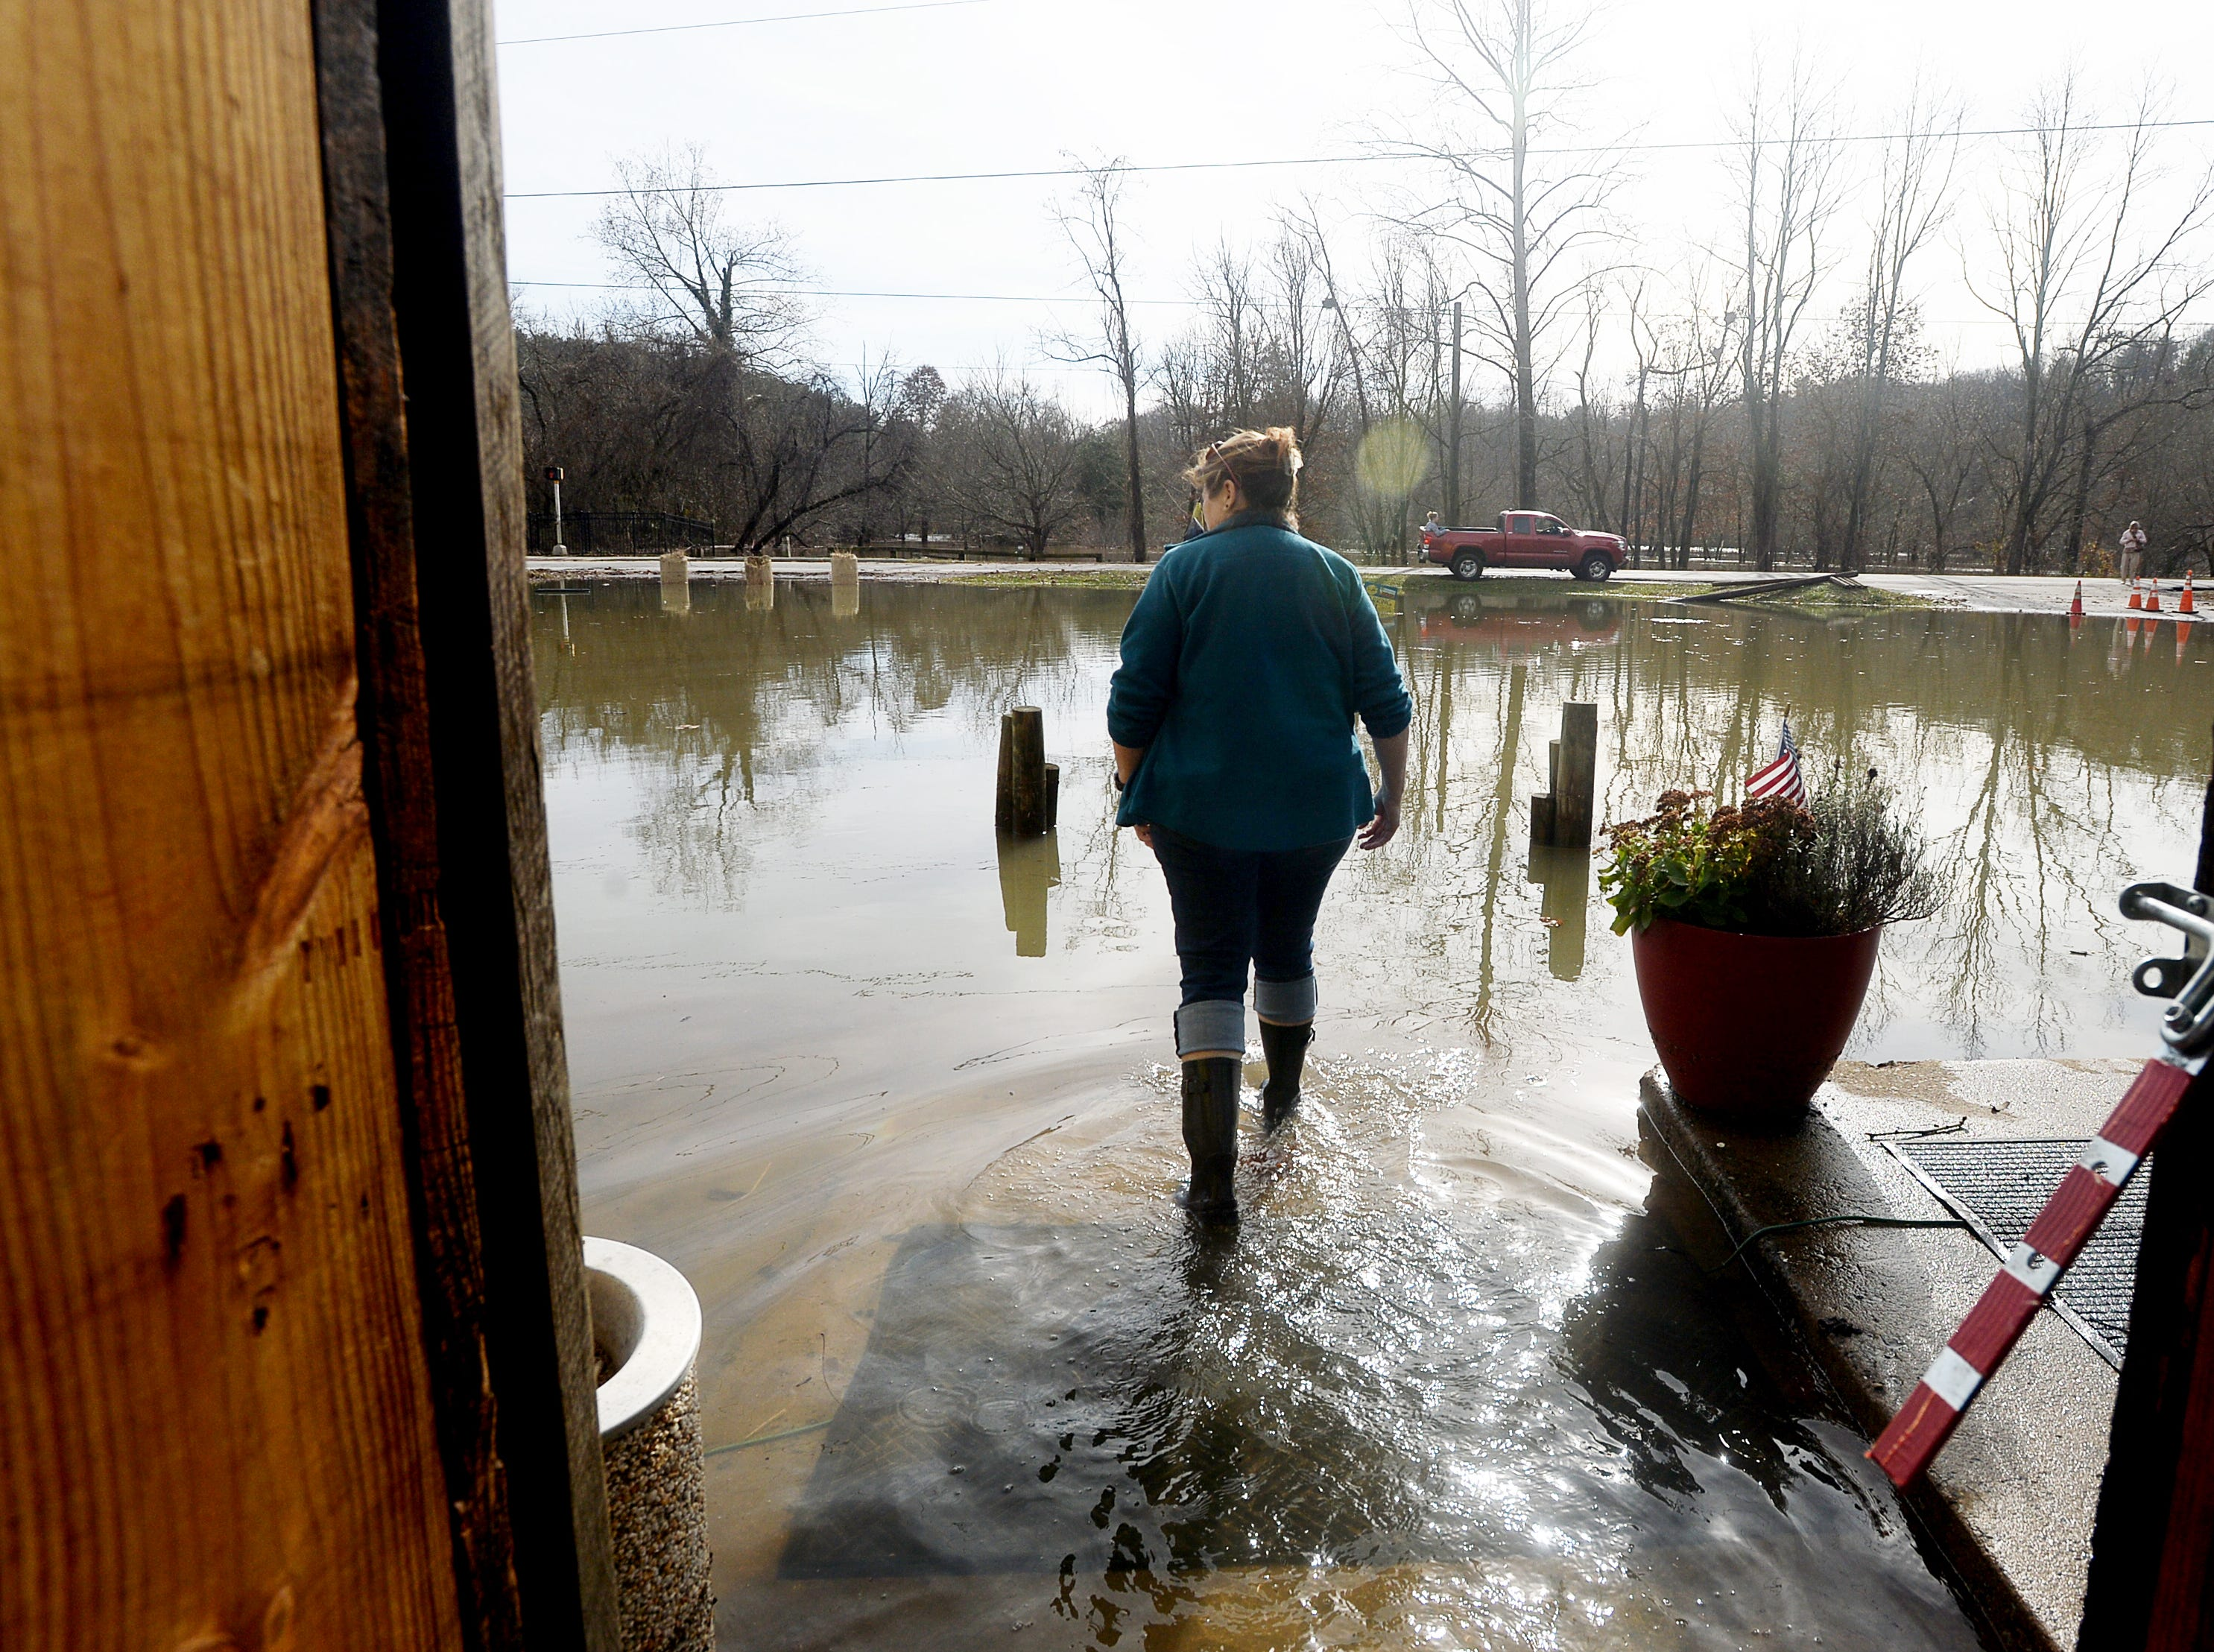 Jolene Fleischbein, owner of Cascade Lounge, walks out of the bar and restaurant complex and into a flooded parking lot Dec. 29, 2018.